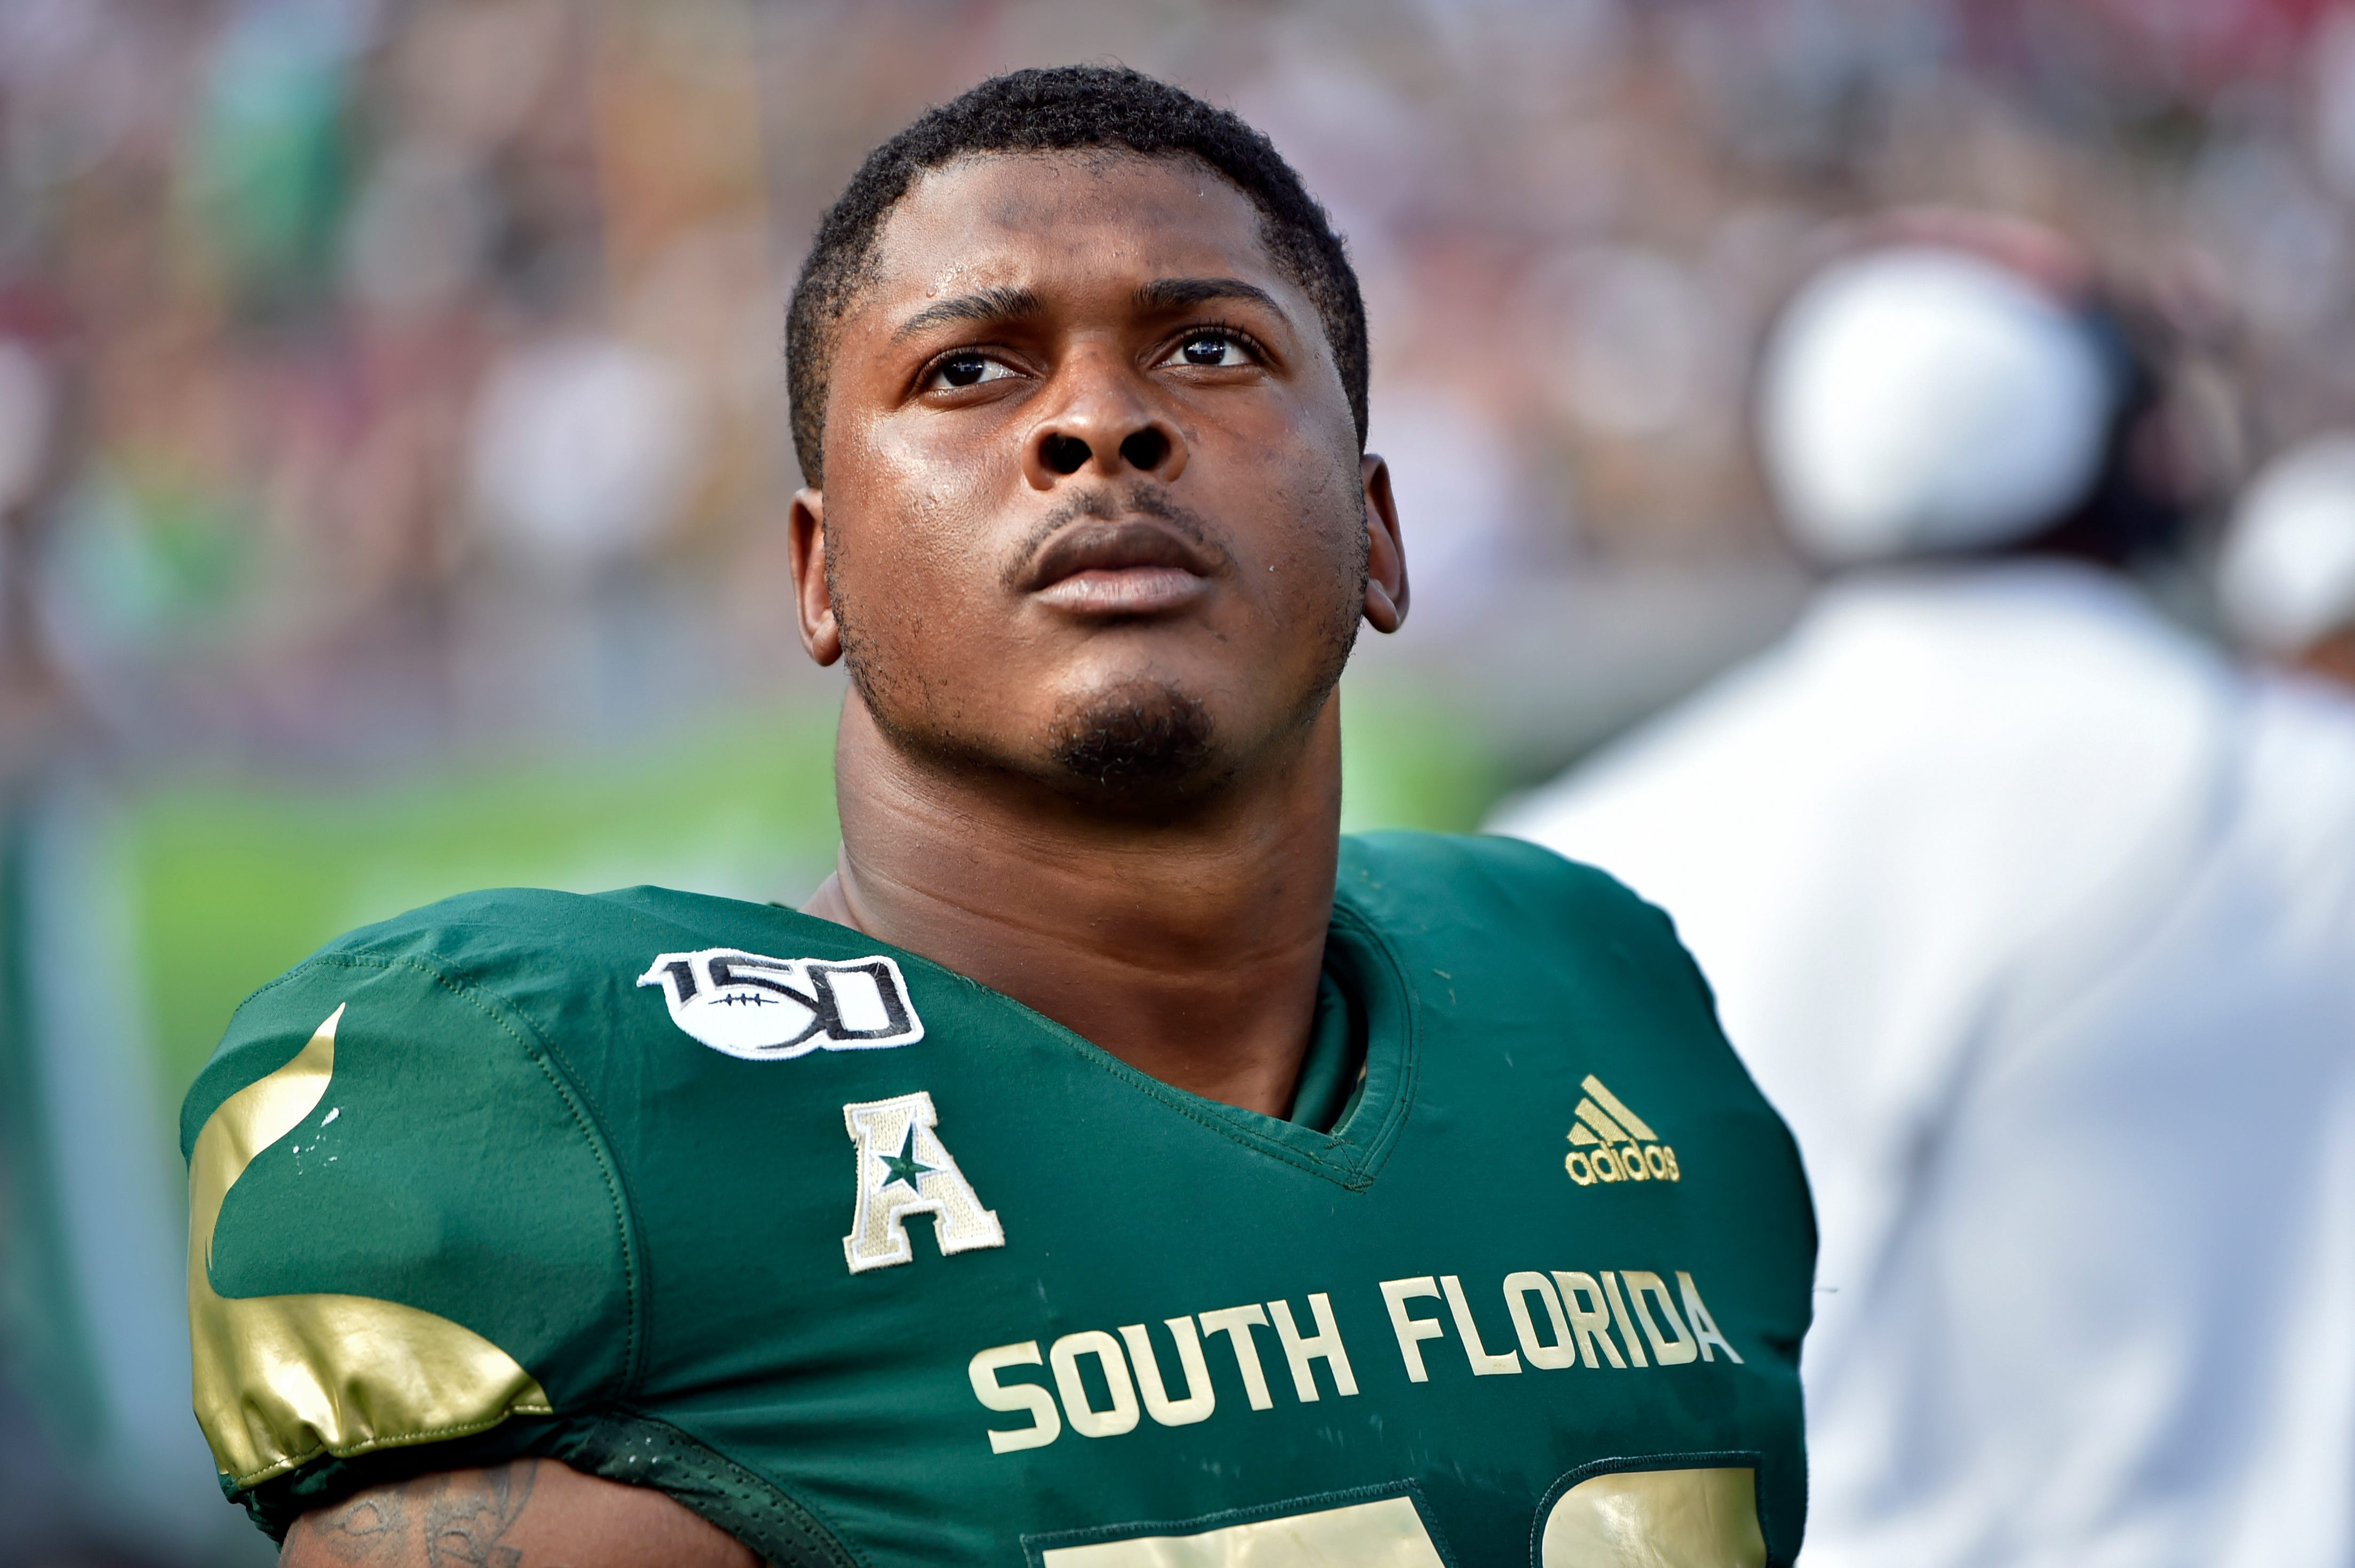 Tyrik Jones is a defensive end with the USF Bulls. Before transferring there, he was found responsible for sexual misconduct at Arizona Western College. Photographed Sept. 28, 2019, in Tampa, Florida.